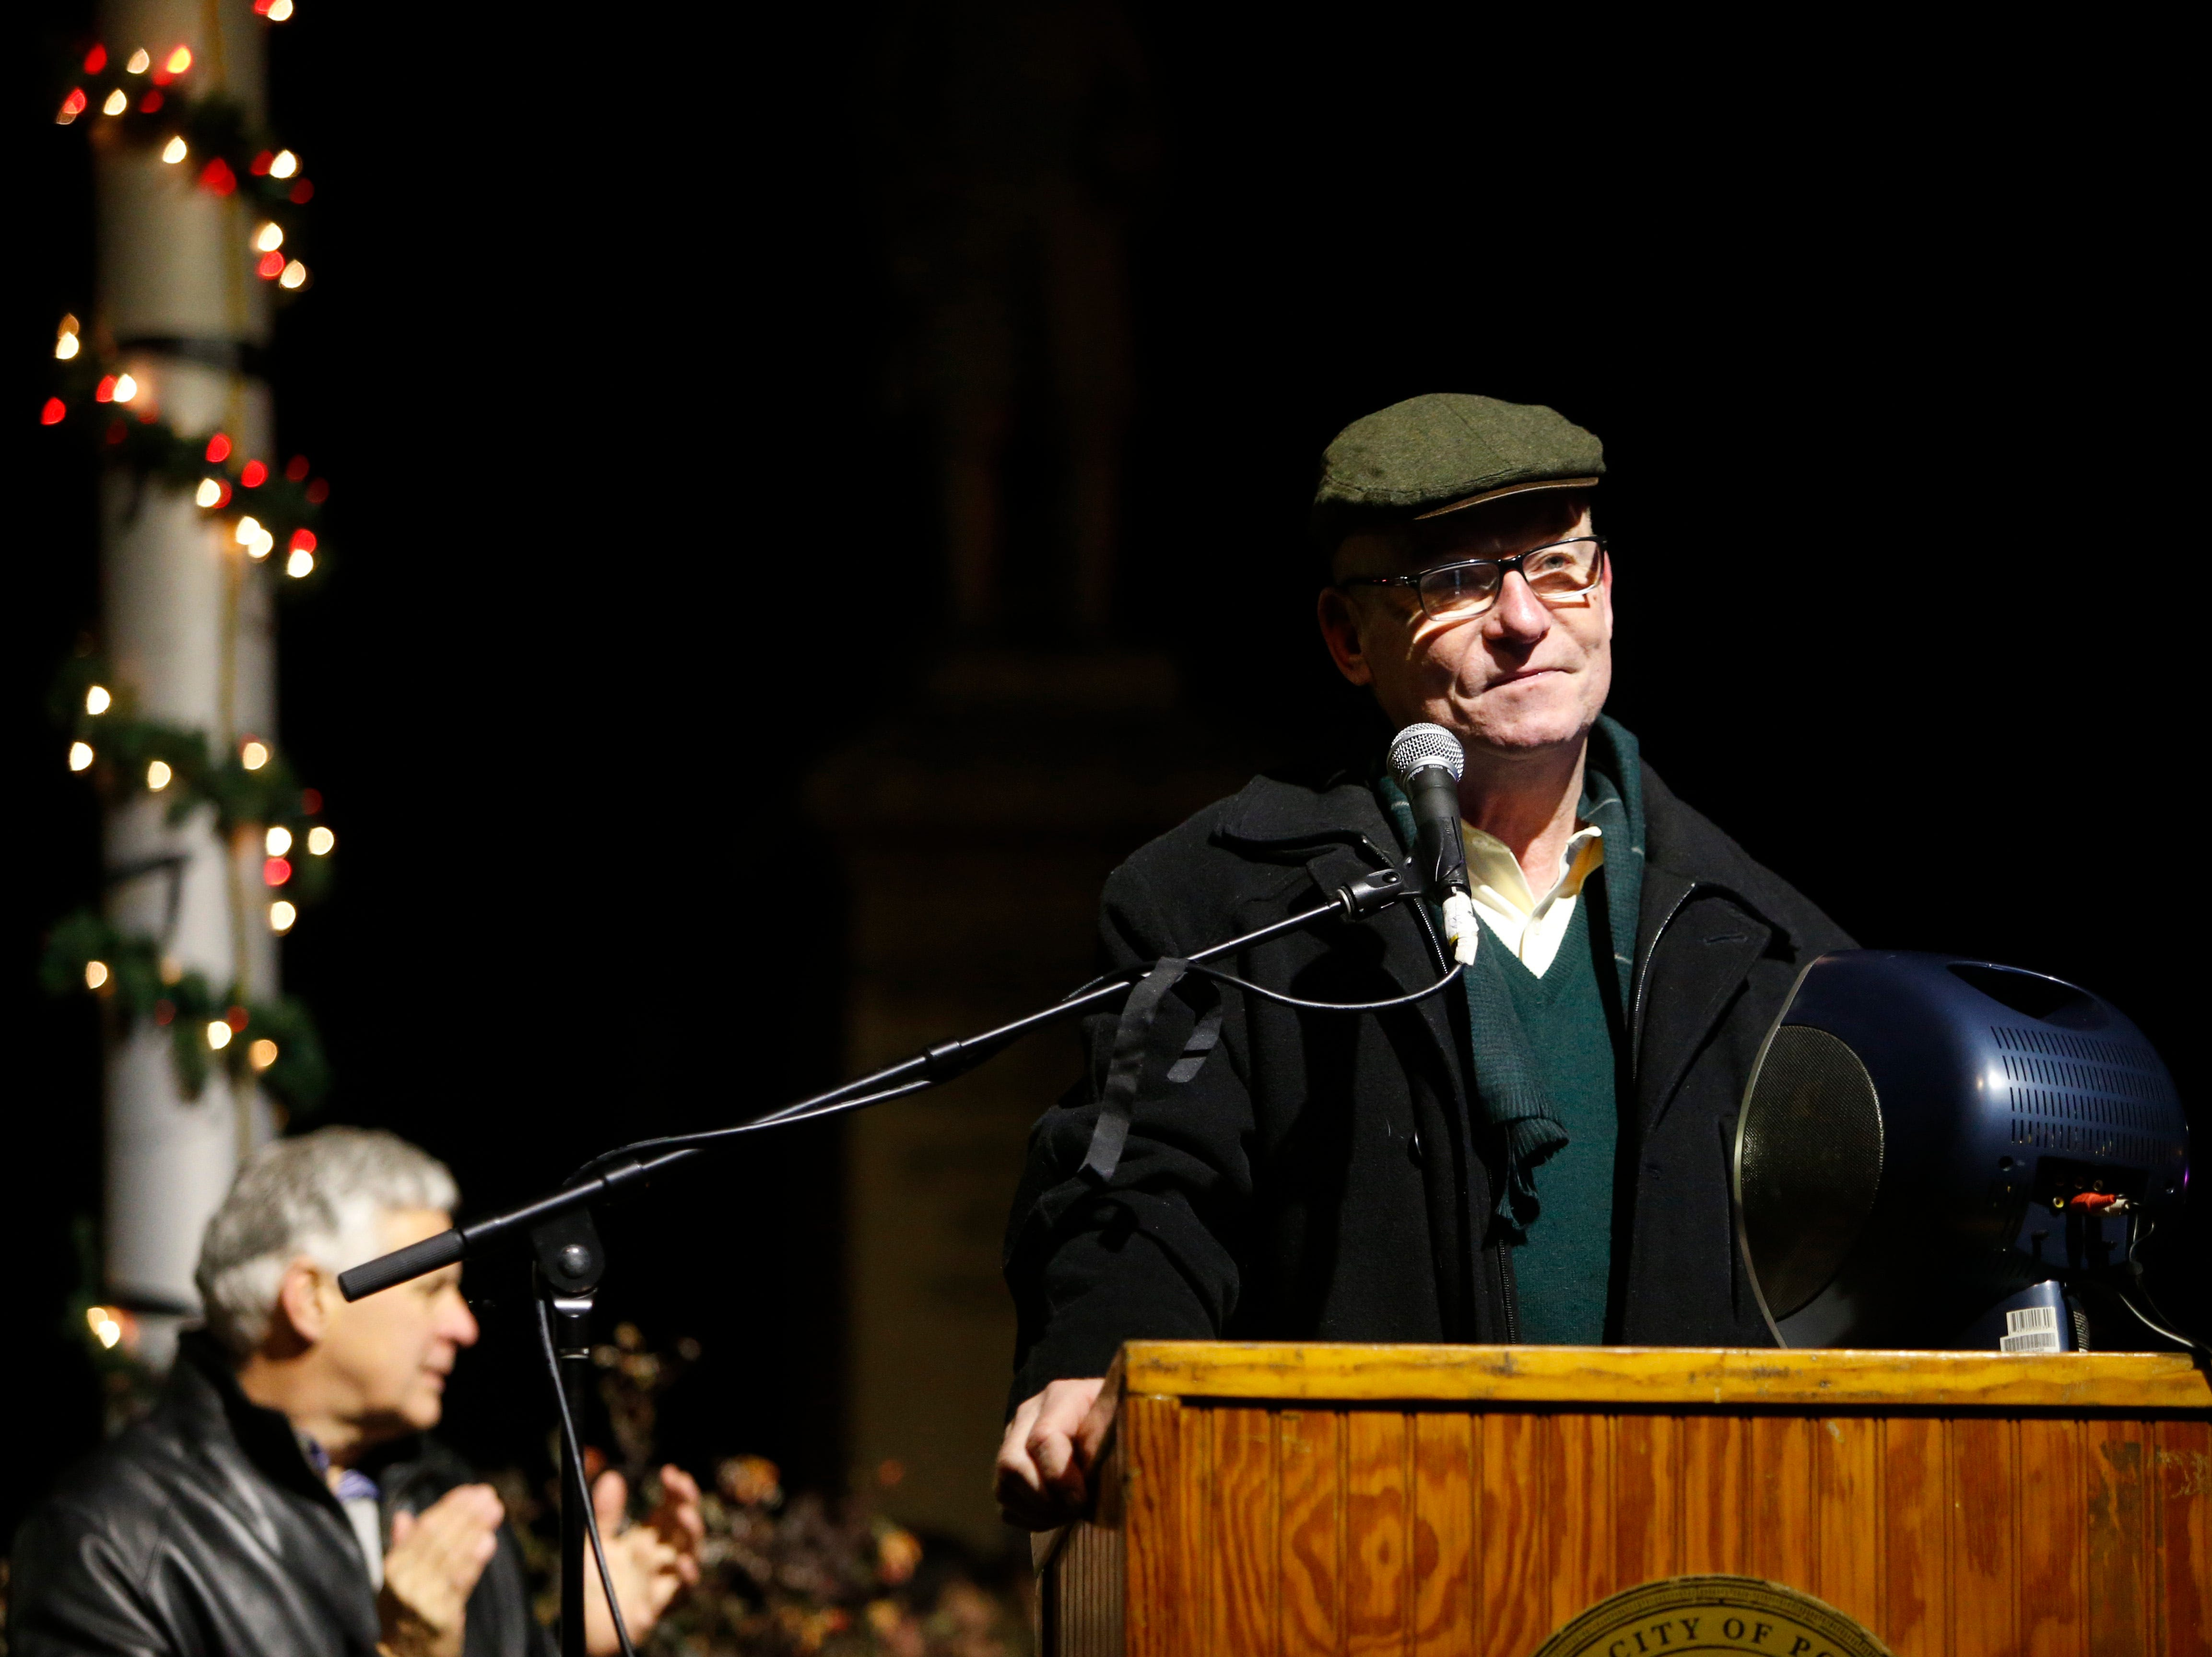 City of Poughkeepsie Mayor Rob Rolison speaks at the final stop of the Celebration of Lights Parade in the City of Poughkeepsie on November 30, 2018.